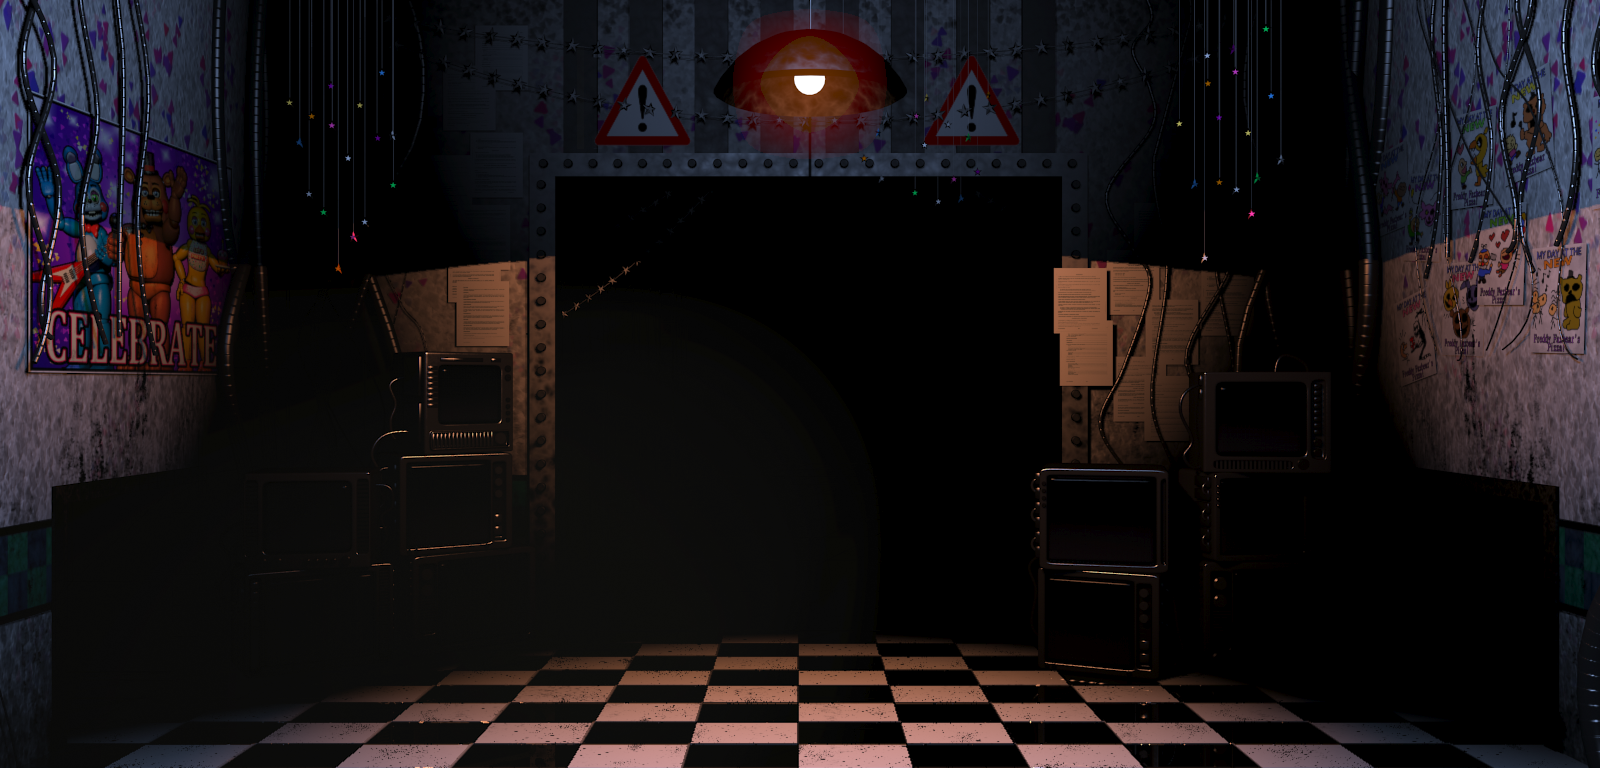 Background 1 Image Five Nights At Freddys Clicker Indie Db